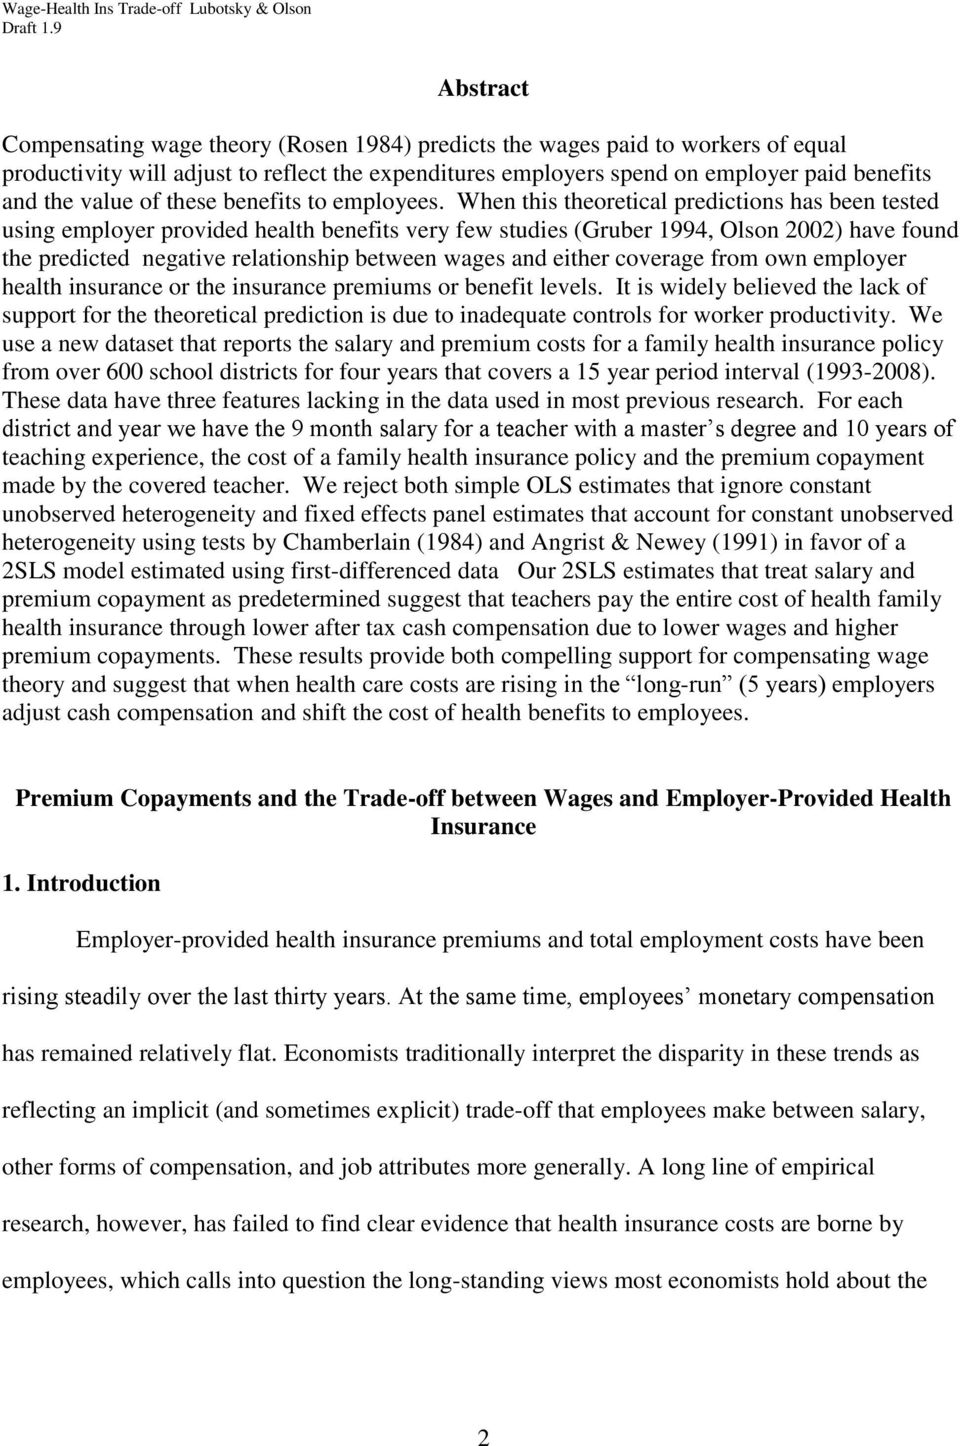 When this theoretical predictions has been tested using employer provided health benefits very few studies (Gruber 1994, Olson 2002) have found the predicted negative relationship between wages and